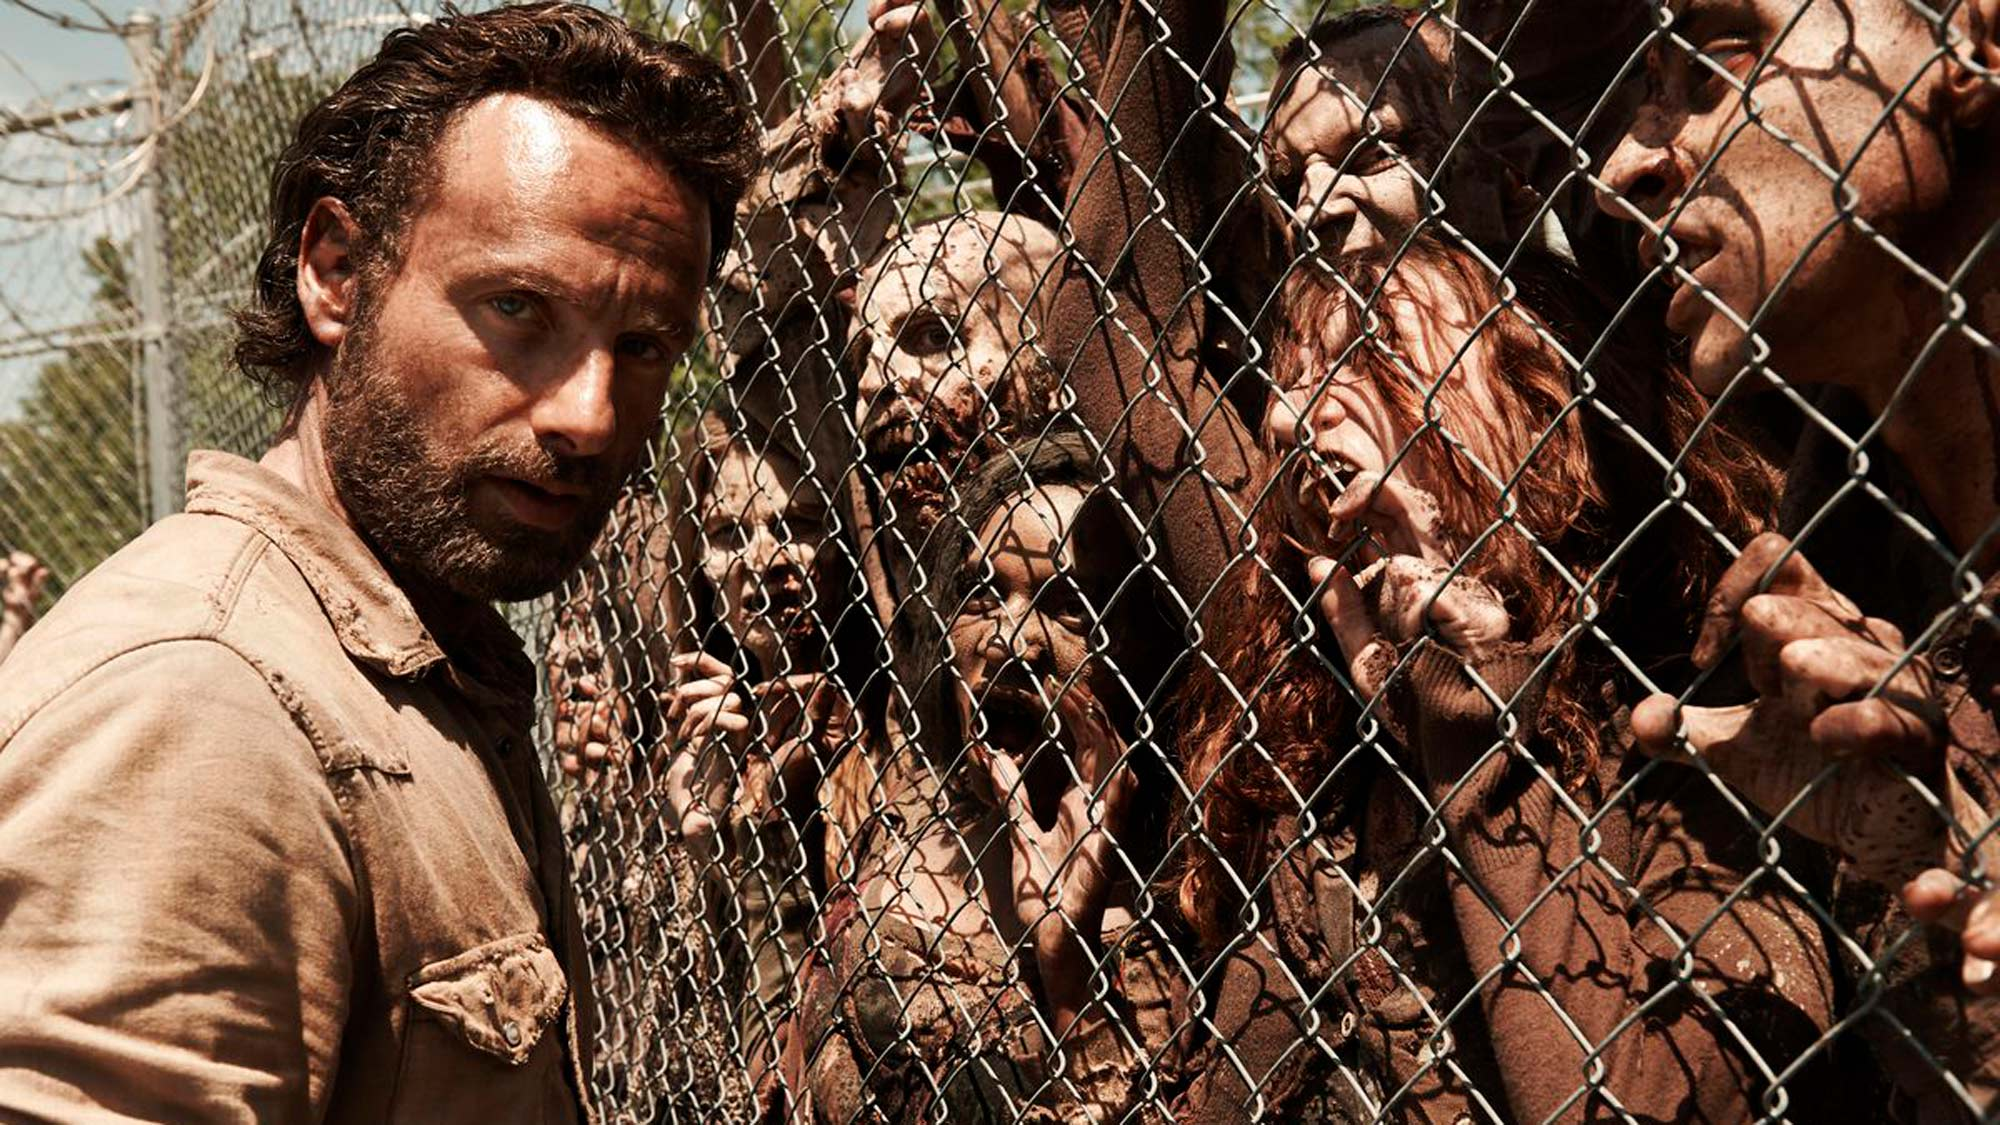 Canceled TV shows: The Walking Dead on AMC